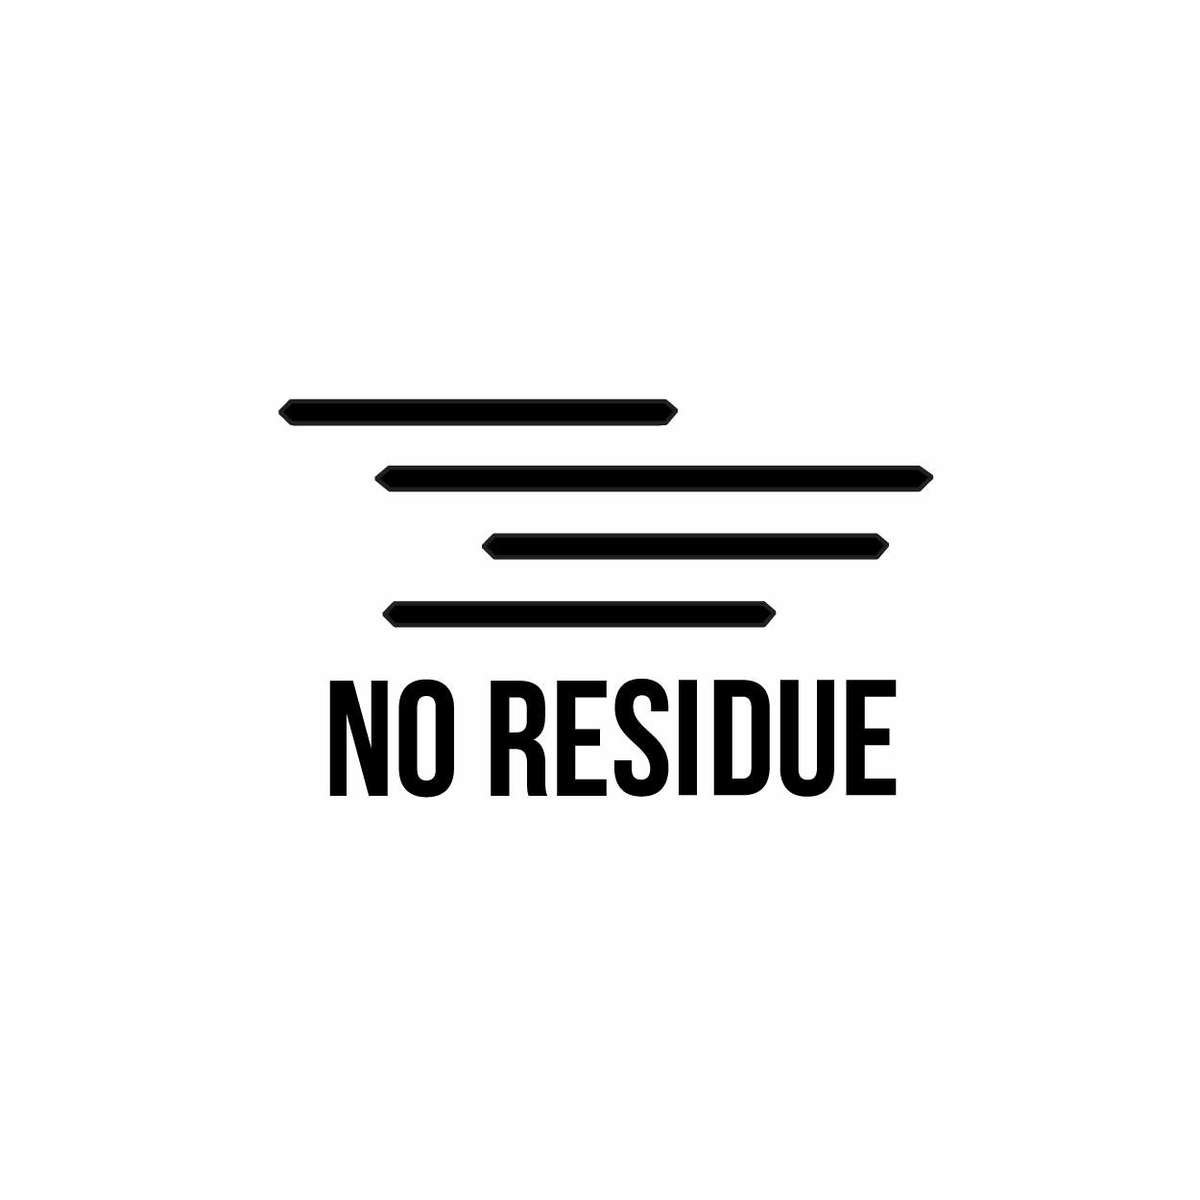 no residue tape icon